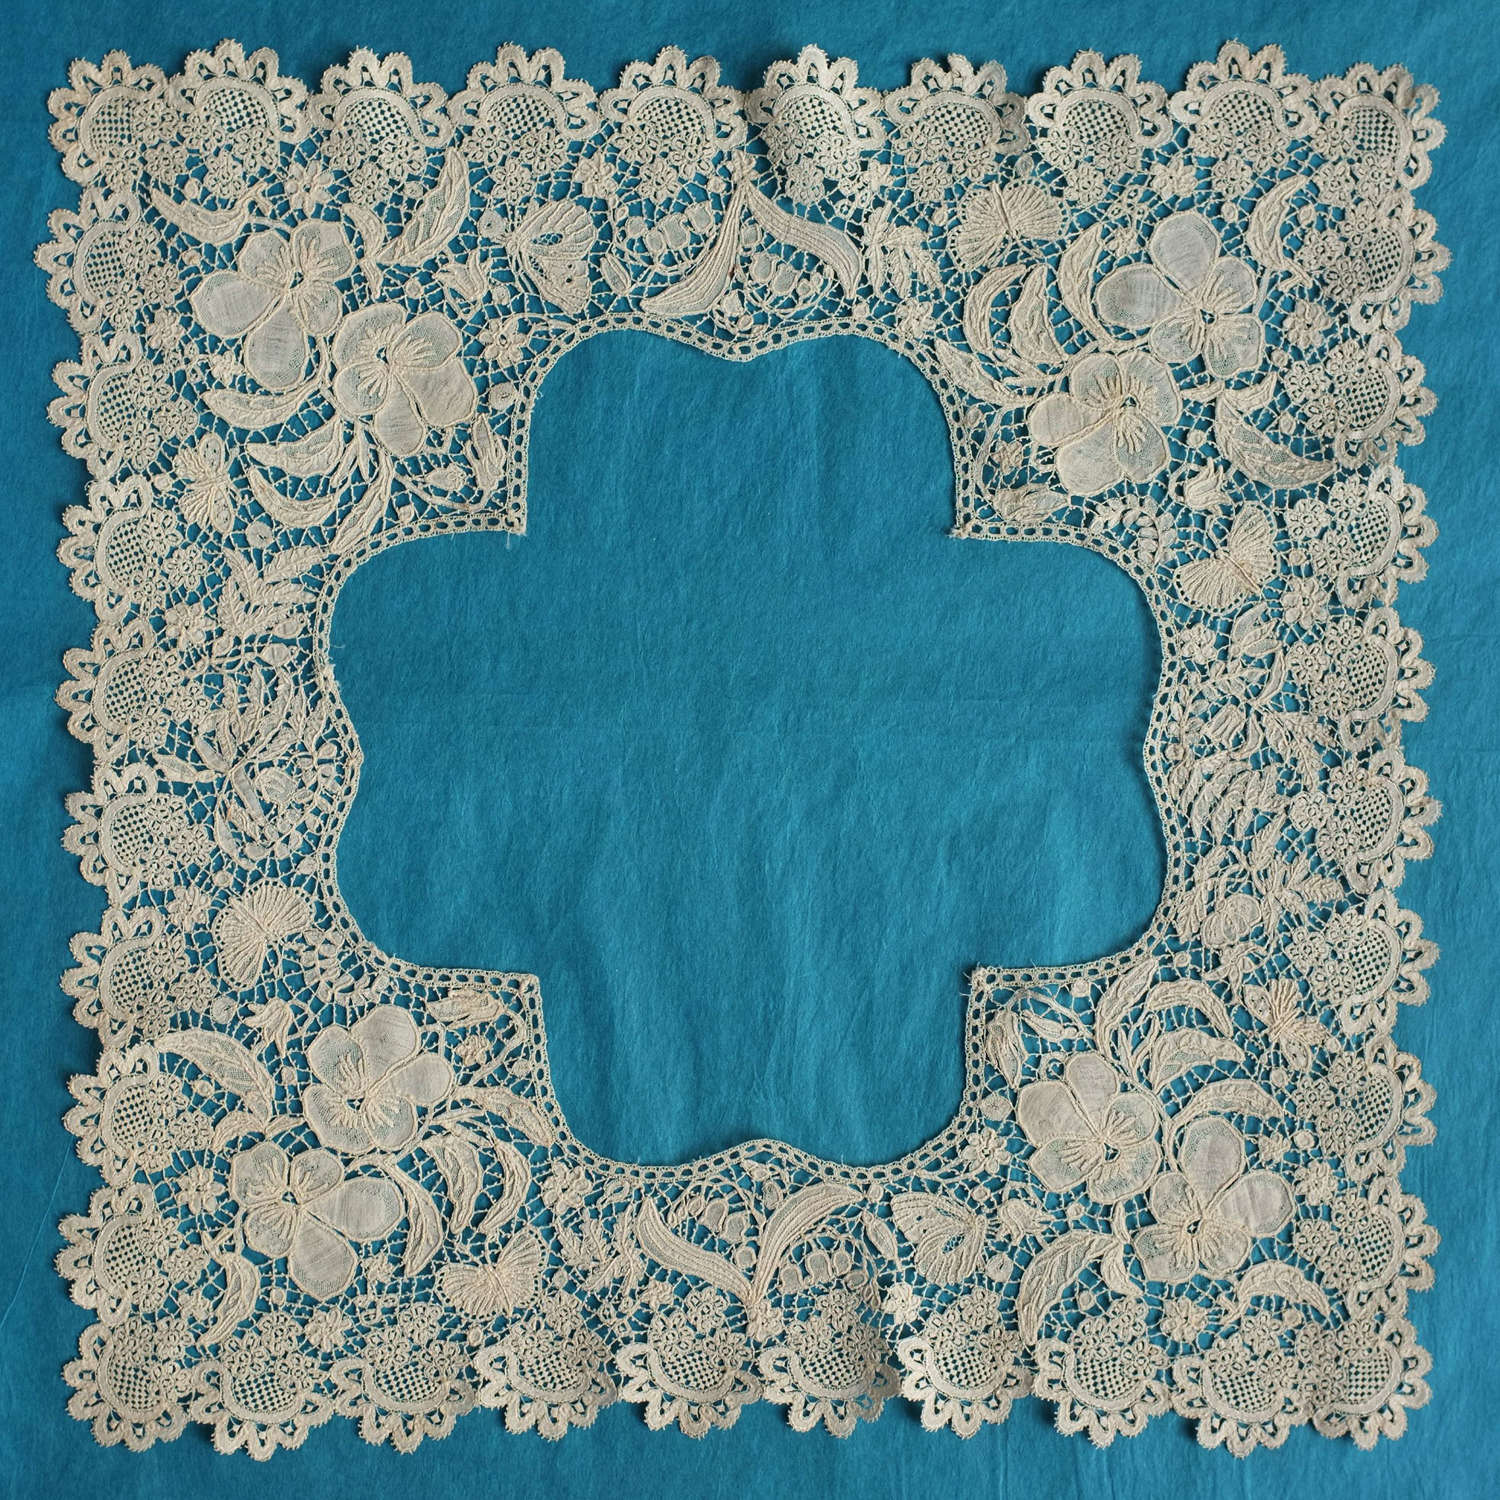 19th Century Honiton Lace Handkerchief Border with Butterflies